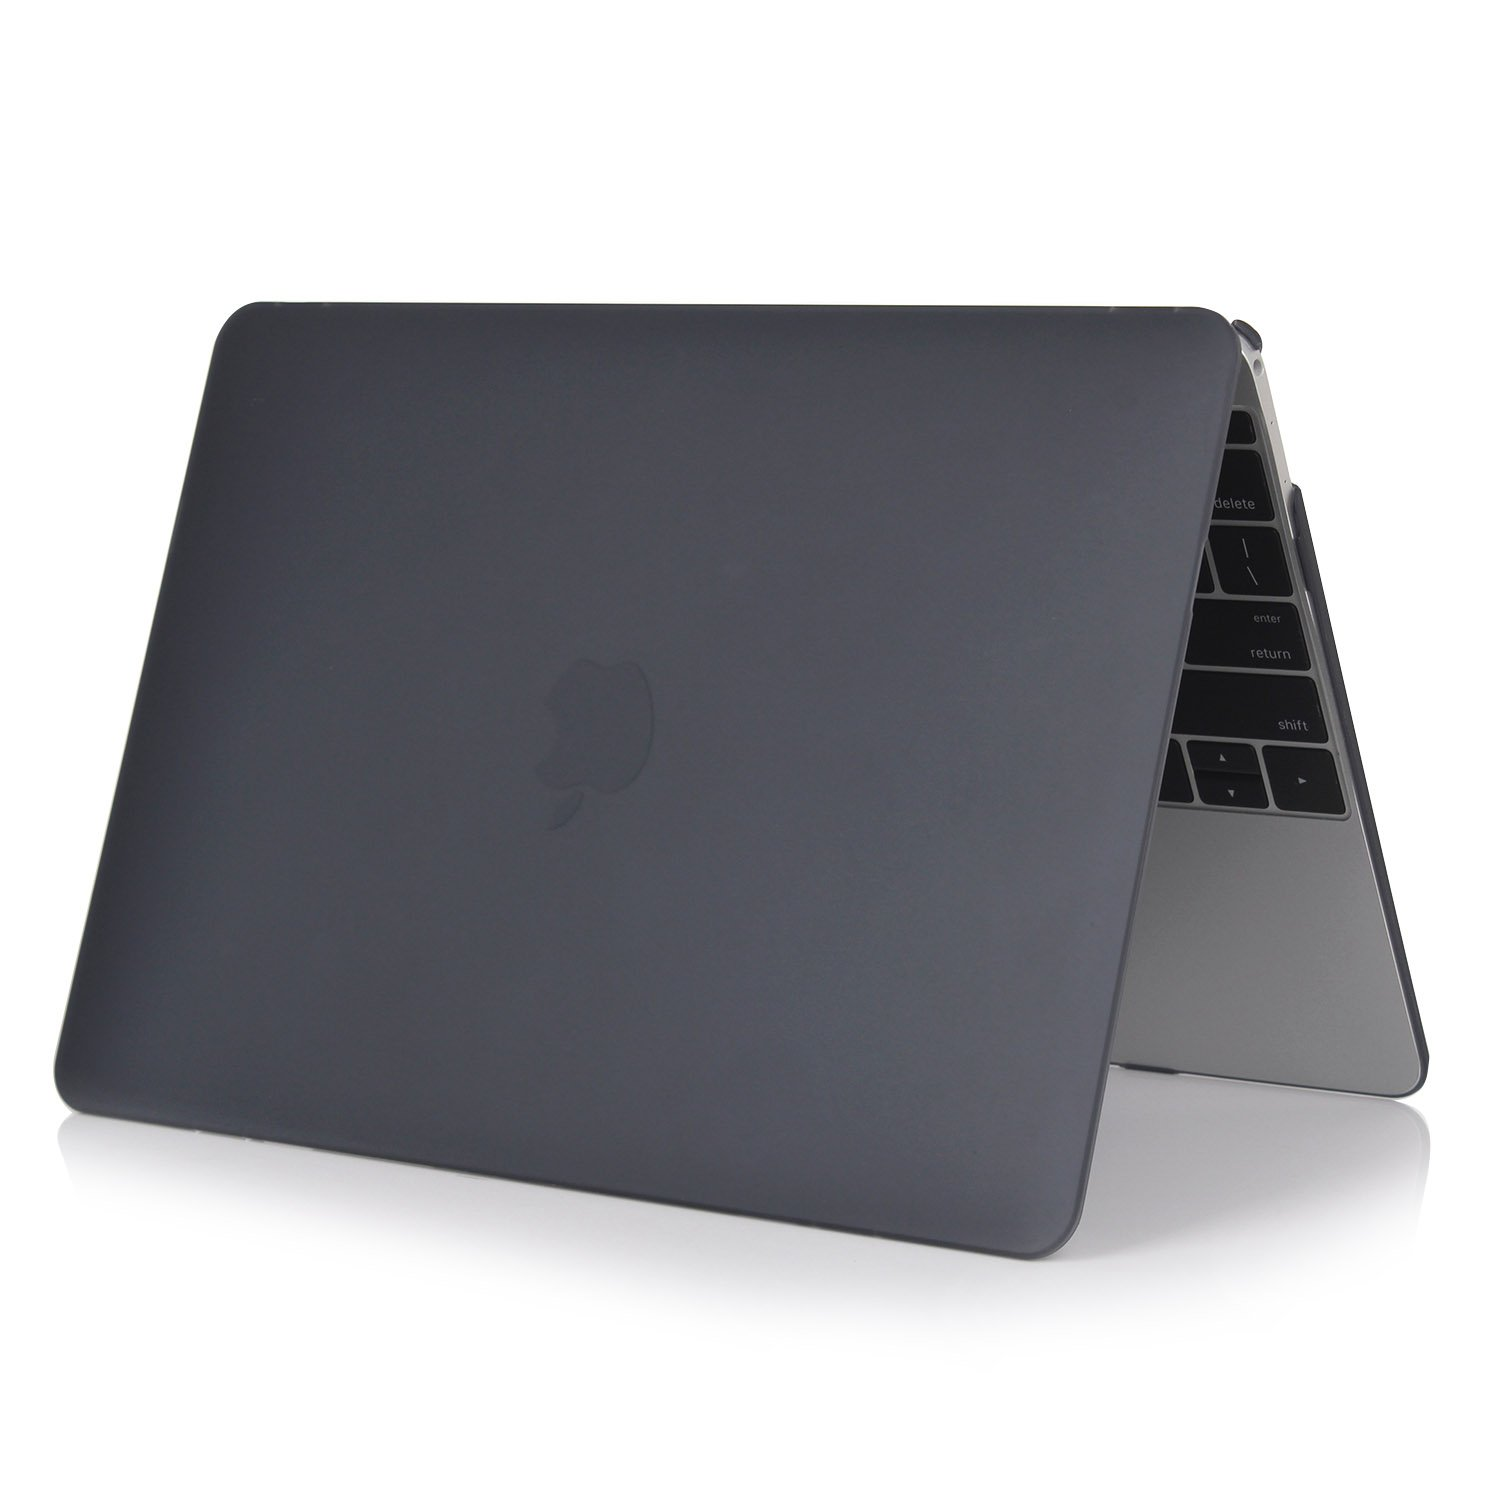 """11.6"""" MOSISO BLACK Matte Case for MacBook Air Laptop SERENITY BLUE FAST FREE SHIPPING USA"""